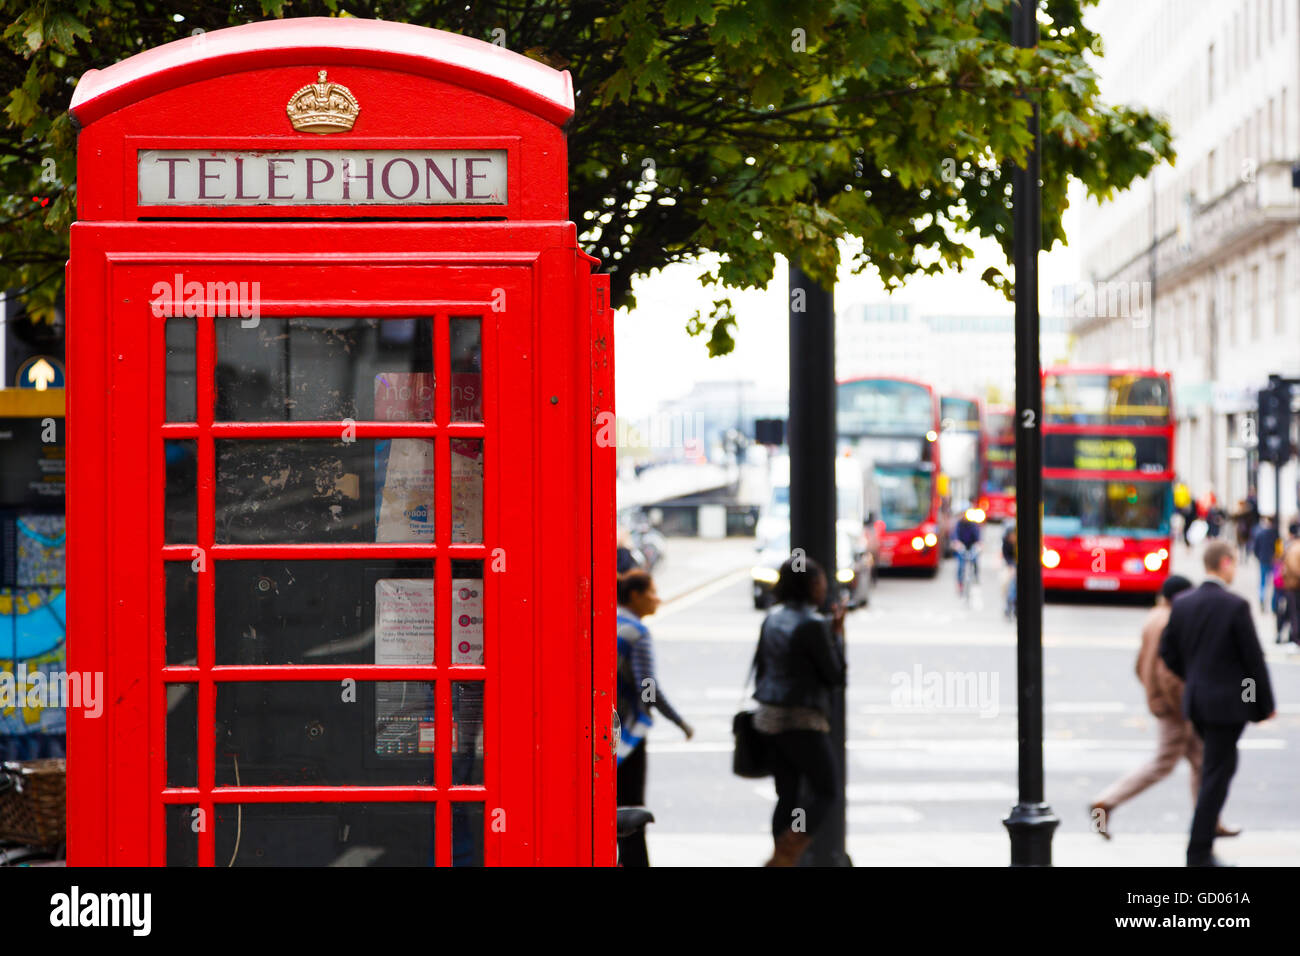 Traditional UK red telephone box. London, England, United Kingdom, Europe. - Stock Image